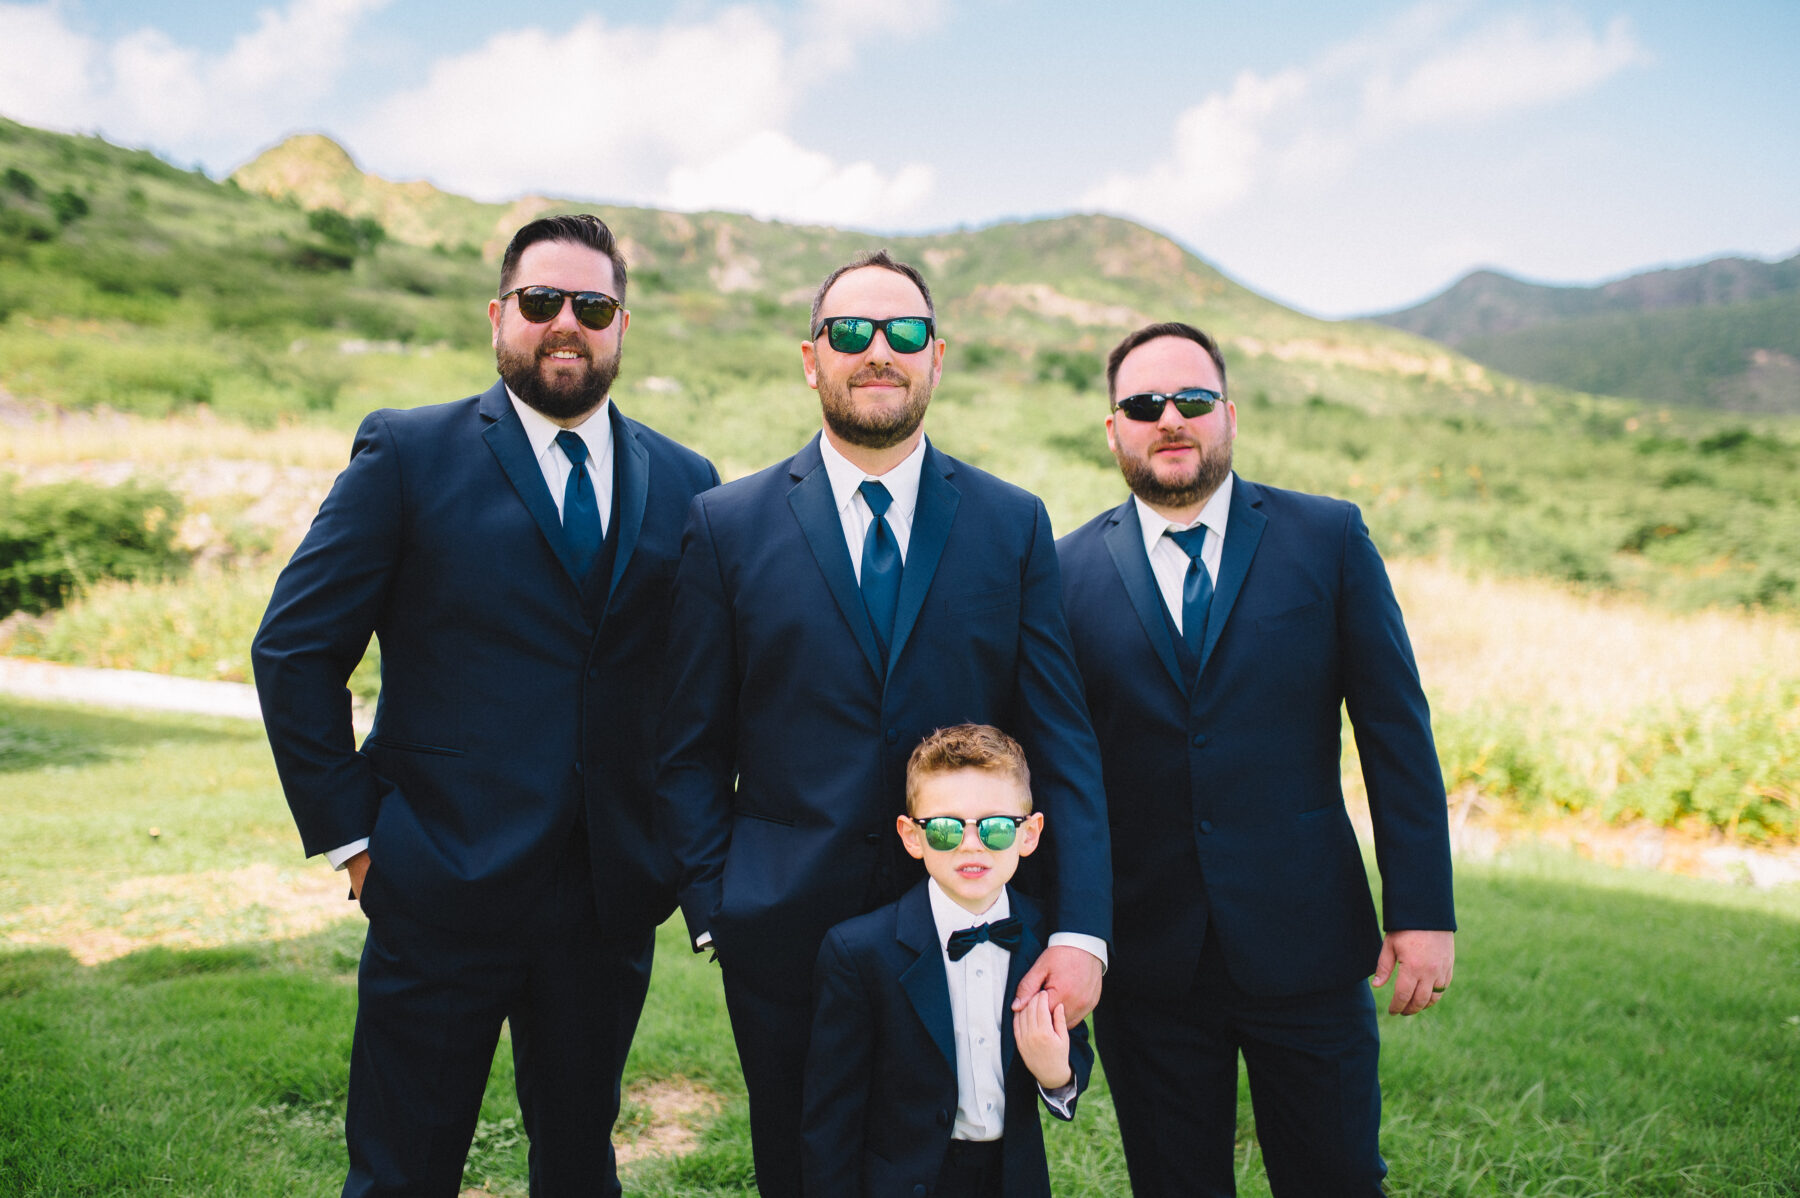 Groom and groomsmen: Intimate Caribbean Wedding by Details Nashville